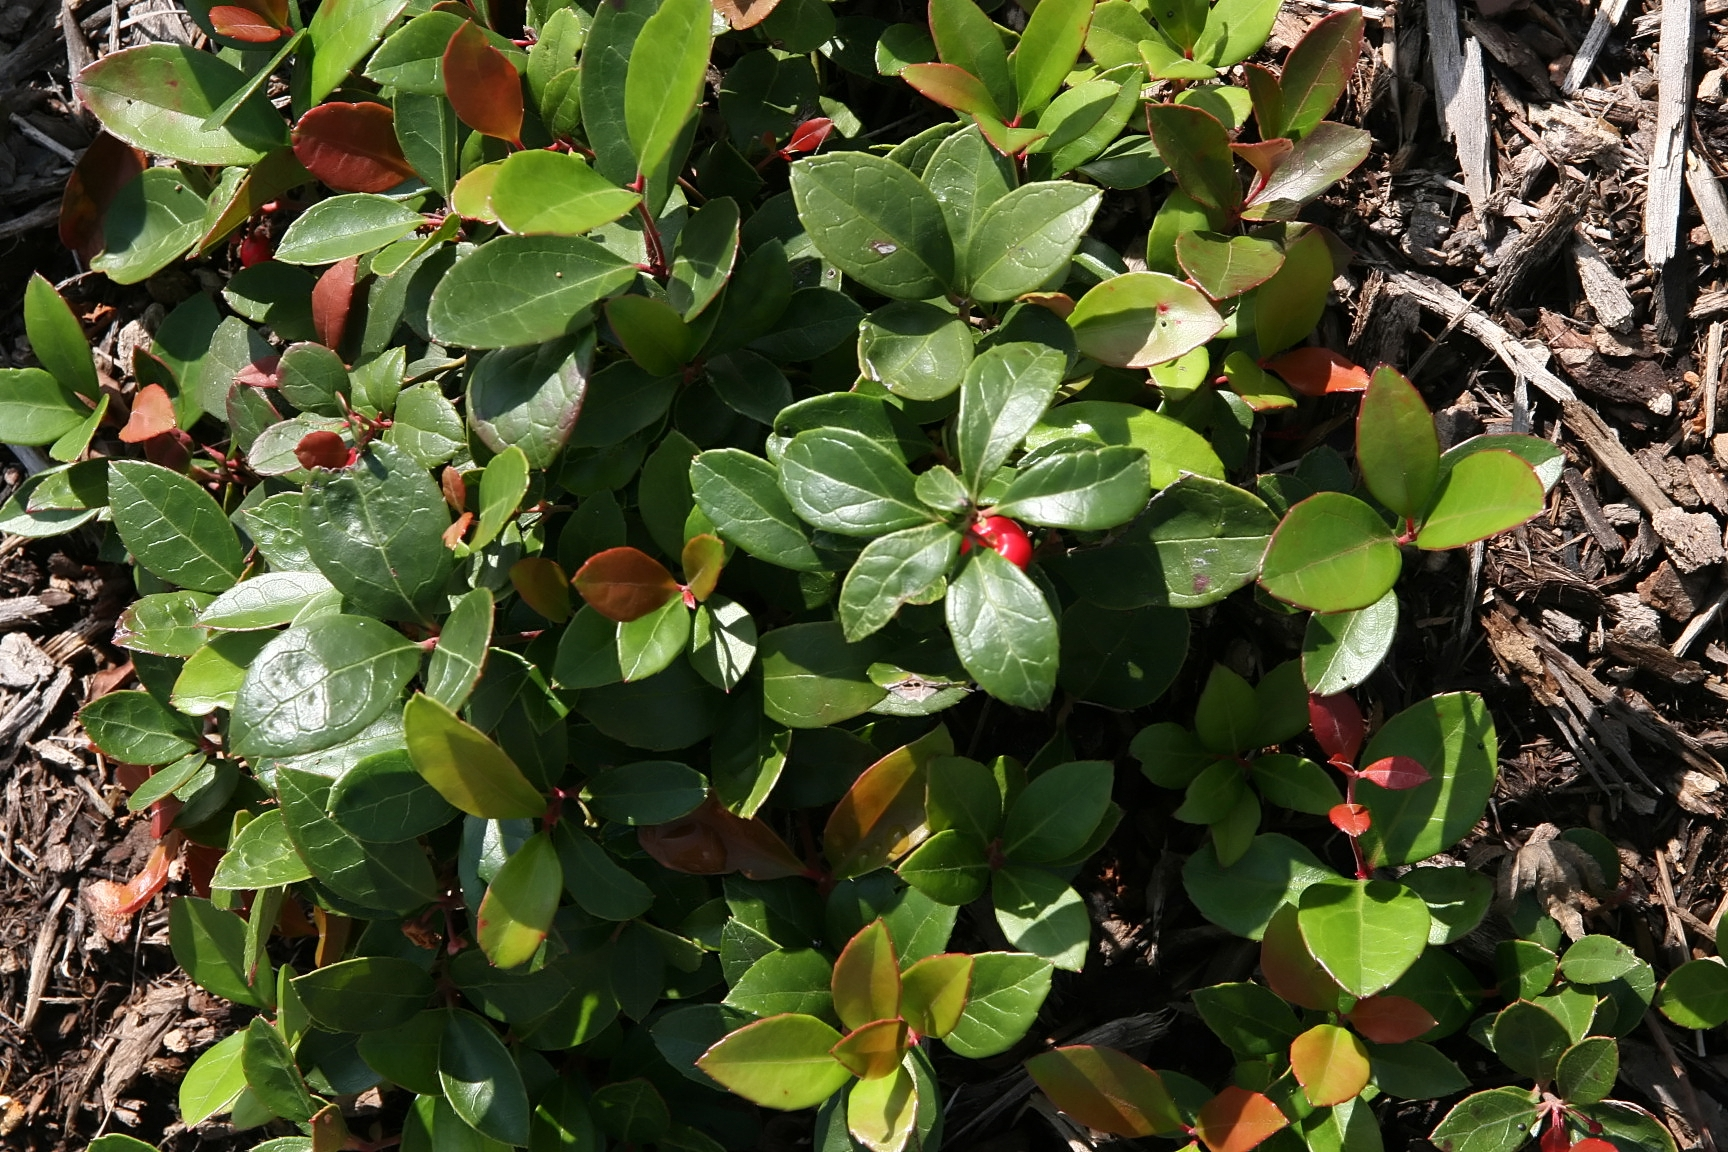 upload.wikimedia.org_wikipedia_commons_a_ad_gaultheria_procumbens_6zz.jpg